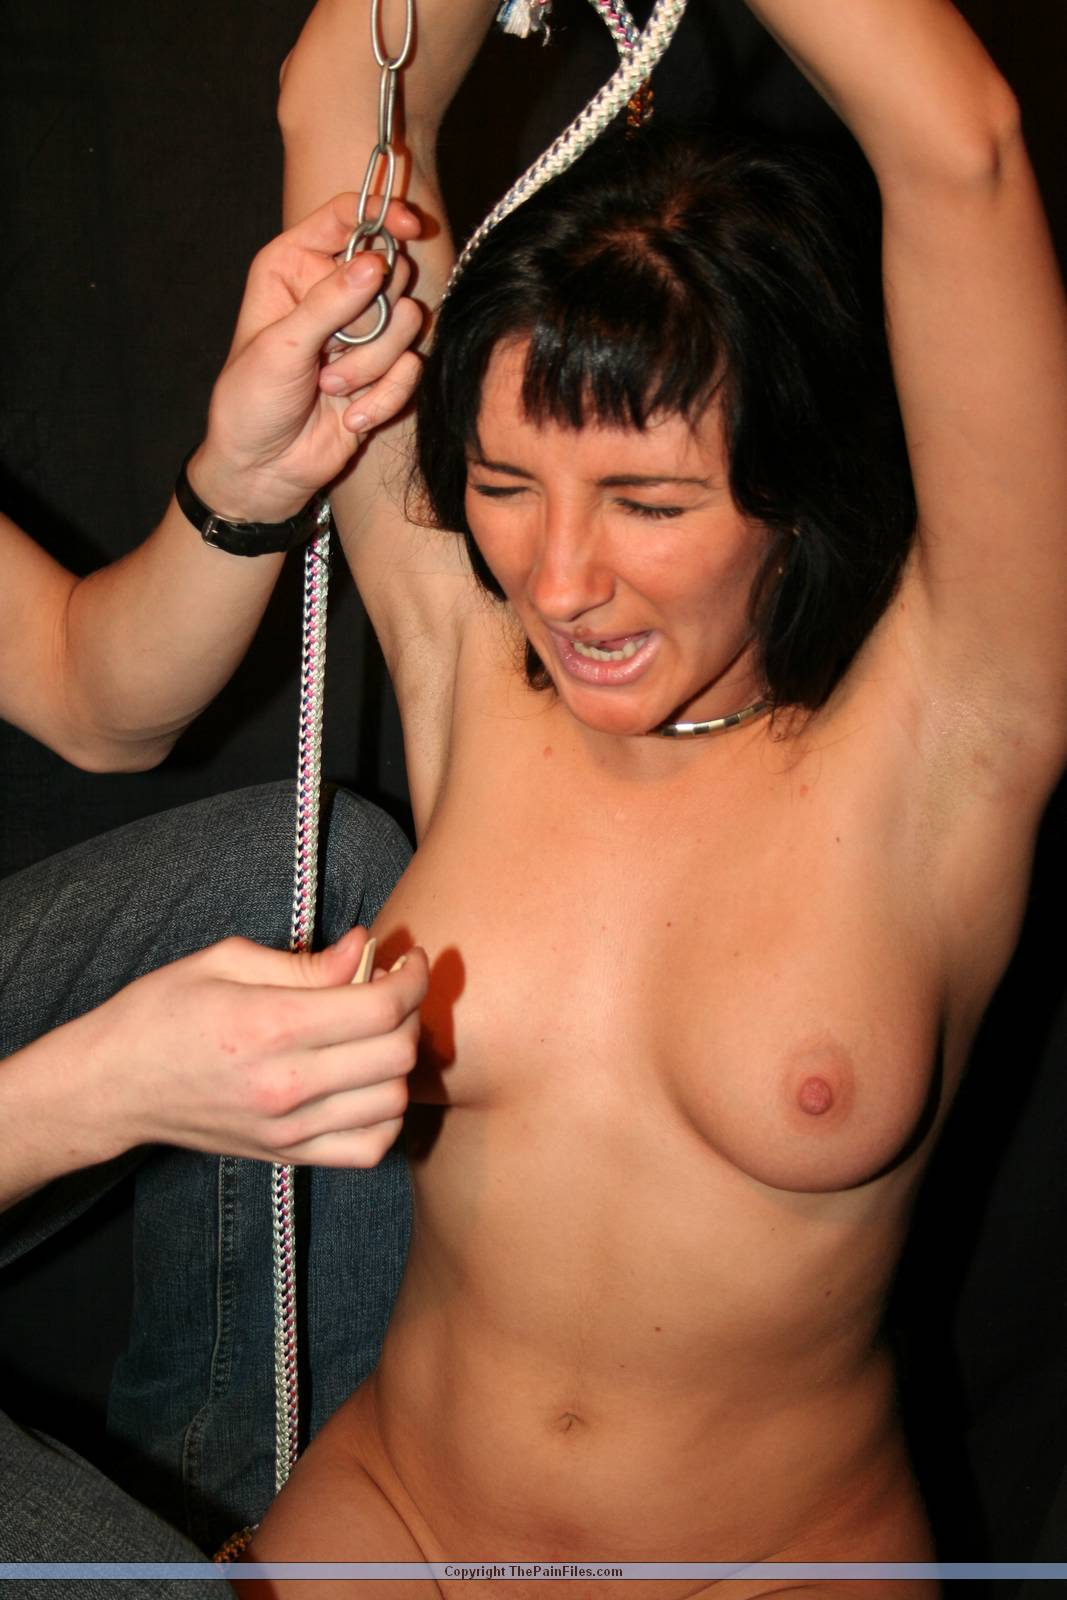 Naked girl is screaming loud in anticipation of a BDSM torture to be performed to her tits